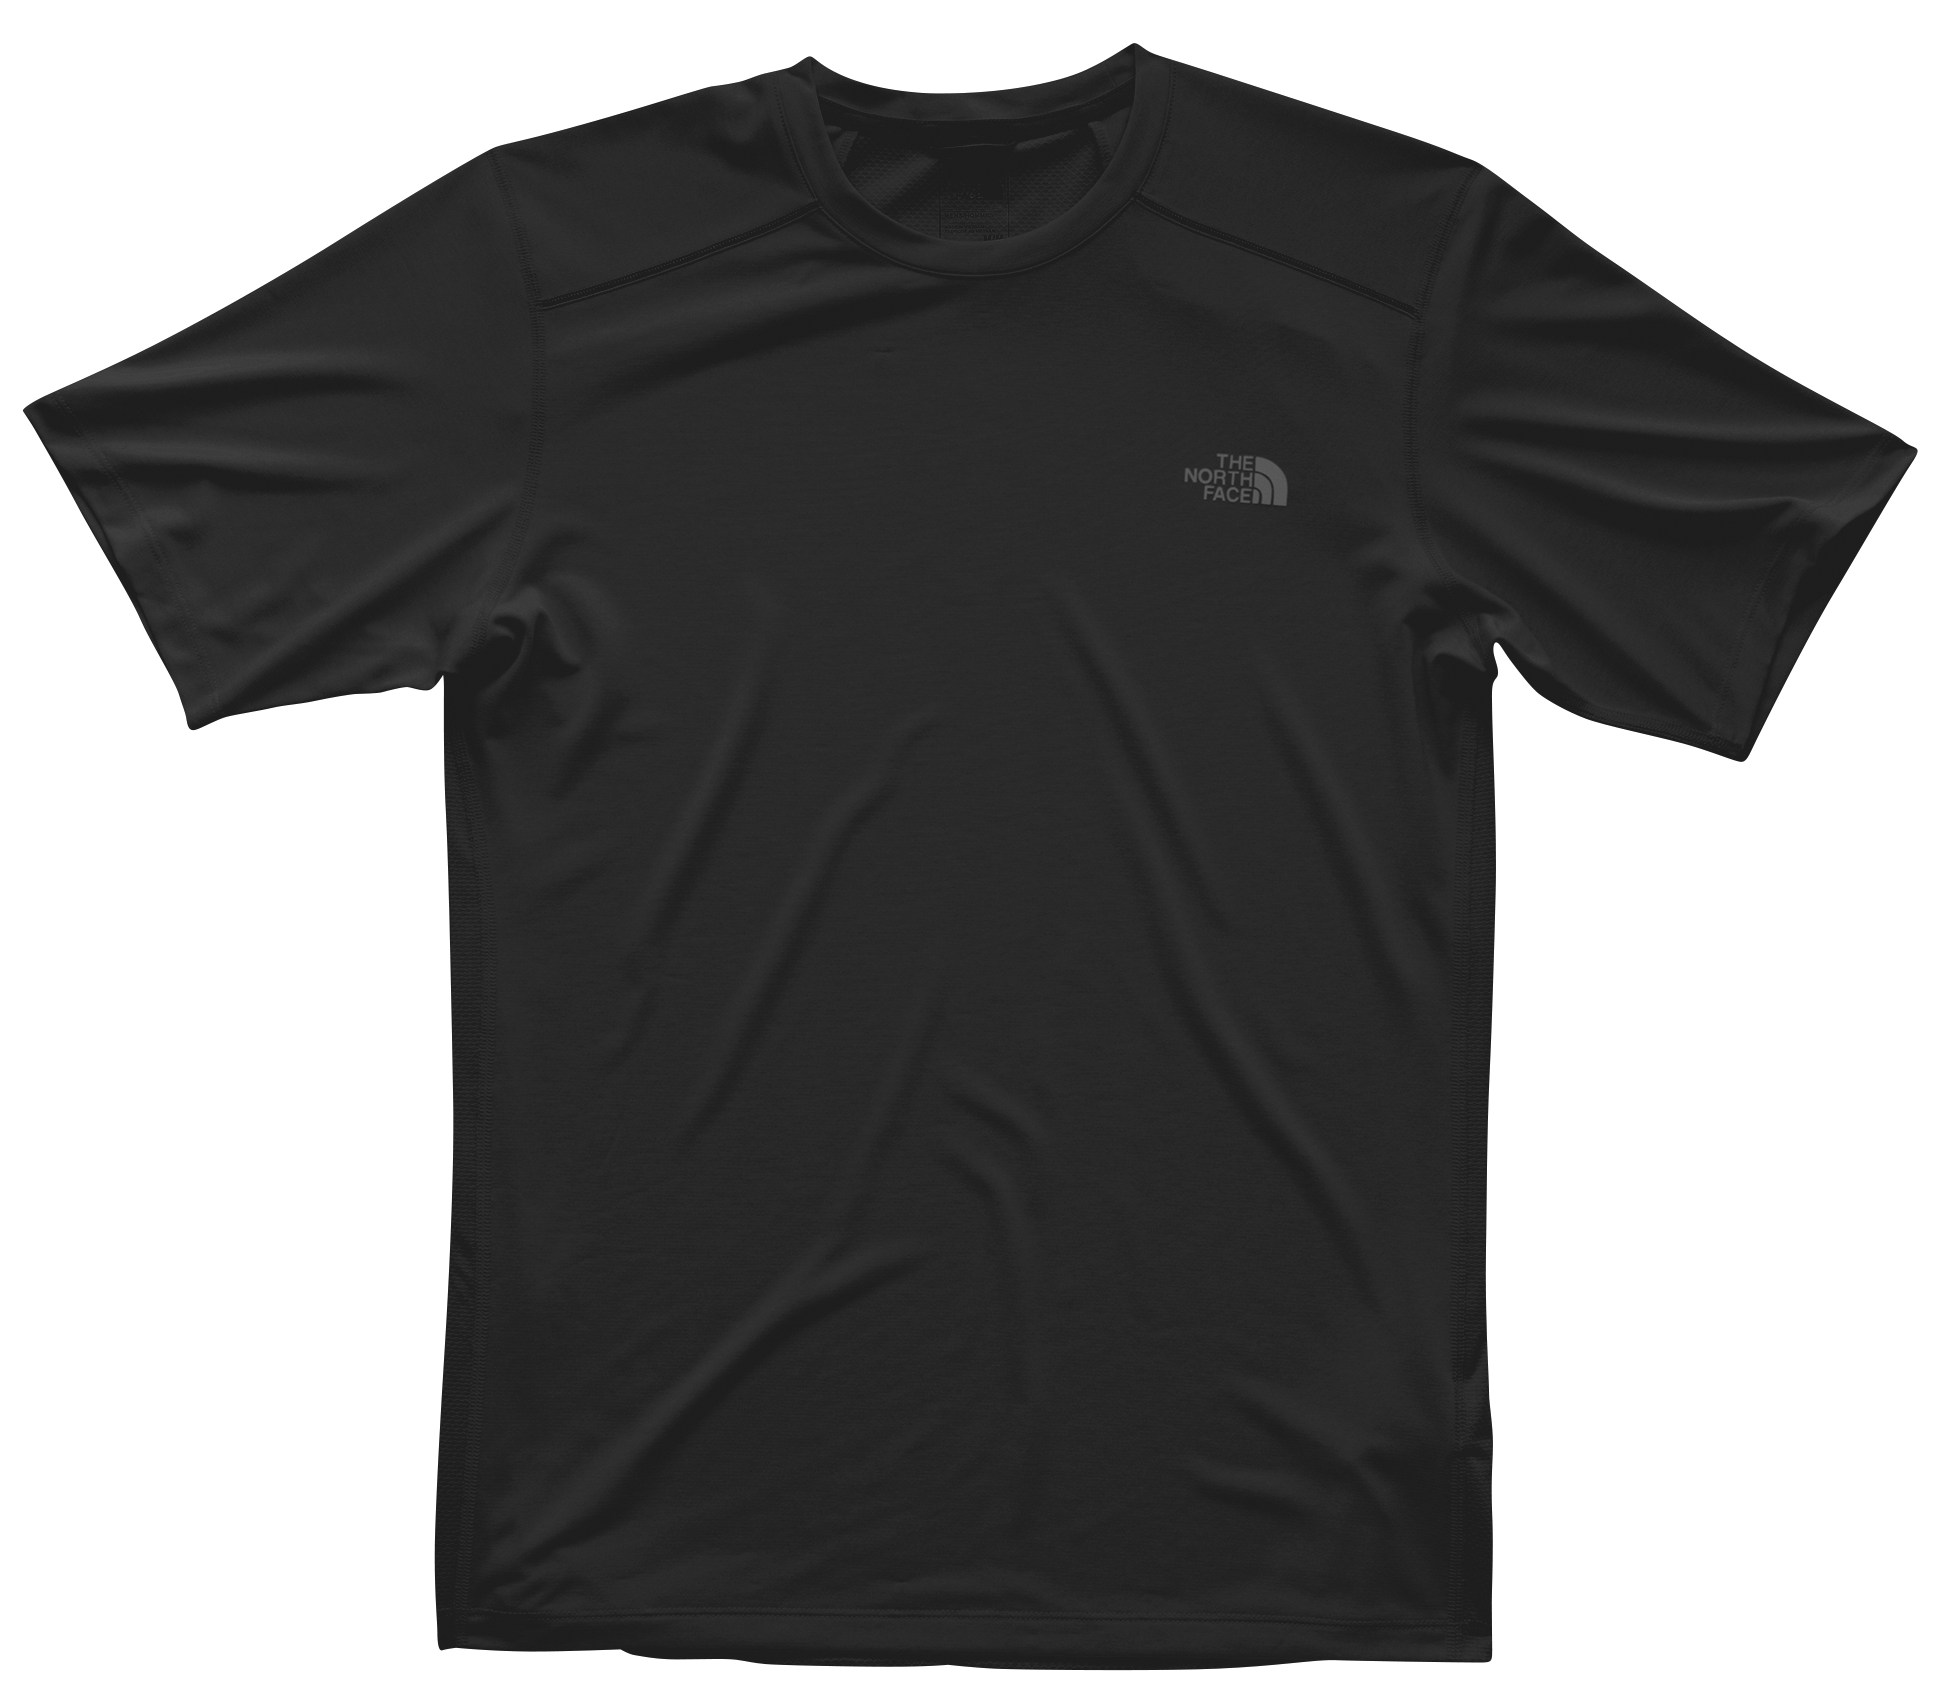 The North Face 24/7 Tech Shirt - Men's